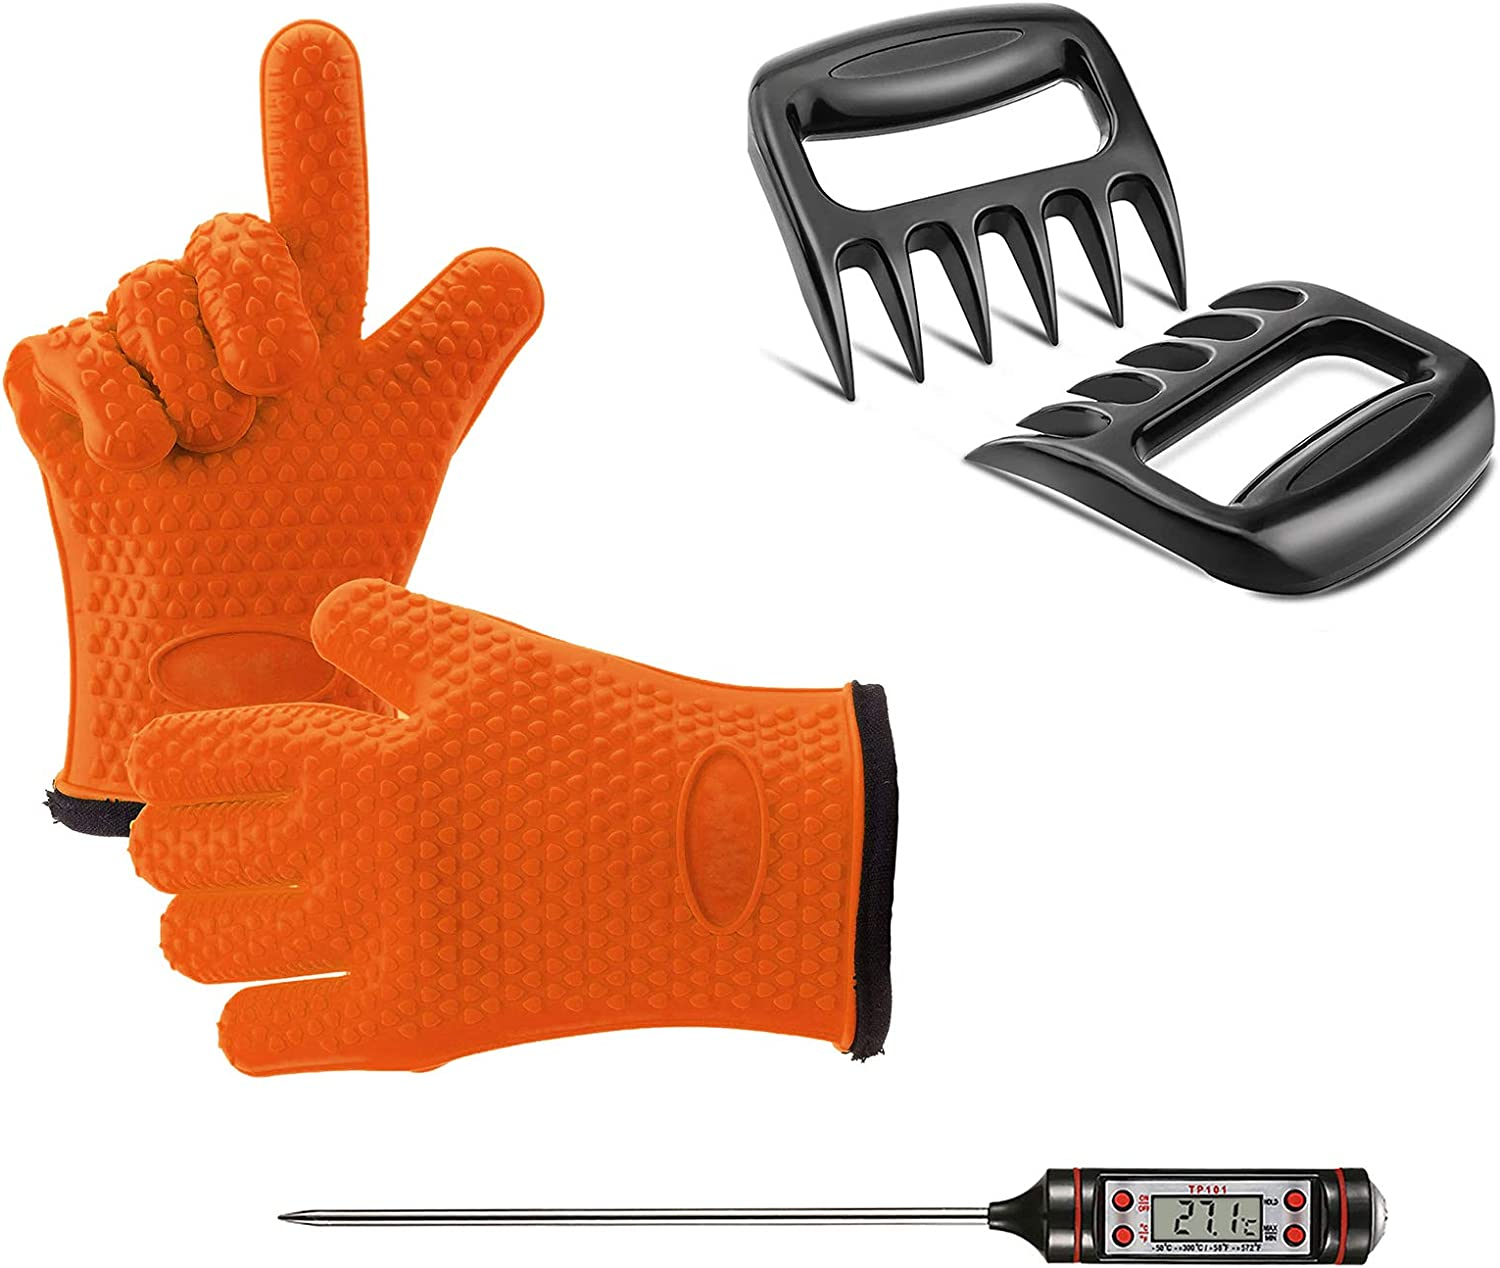 Max 78% OFF Grilling Accessories Set 3 Pcs Grill Sh Kit Tools Free Shipping New Includes Meat